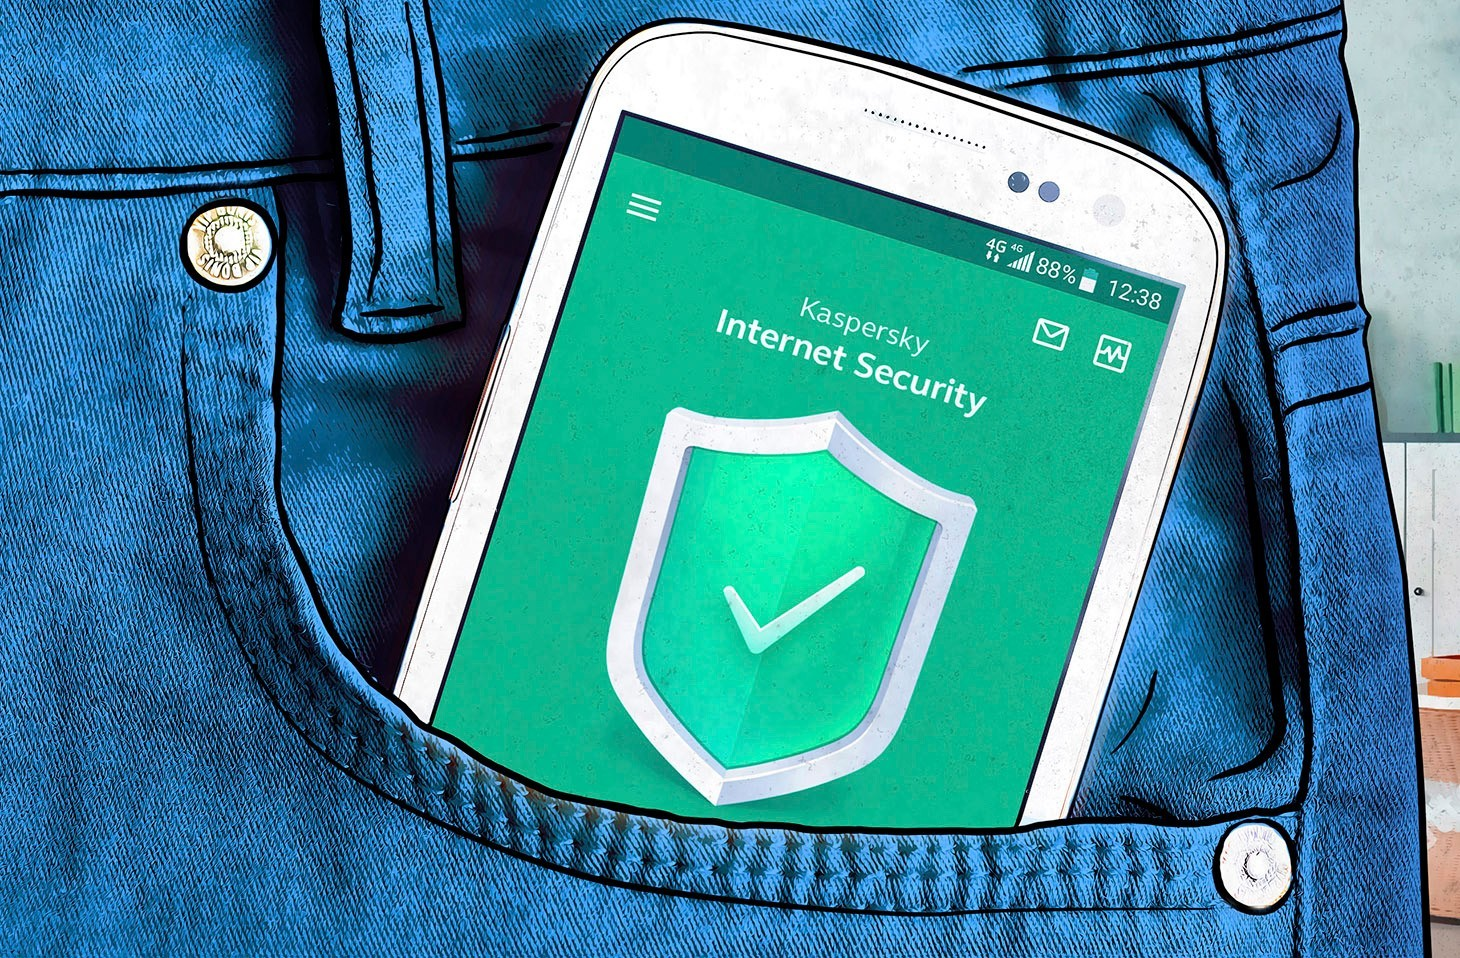 Do you need a paid antivirus for Android? | Kaspersky ...